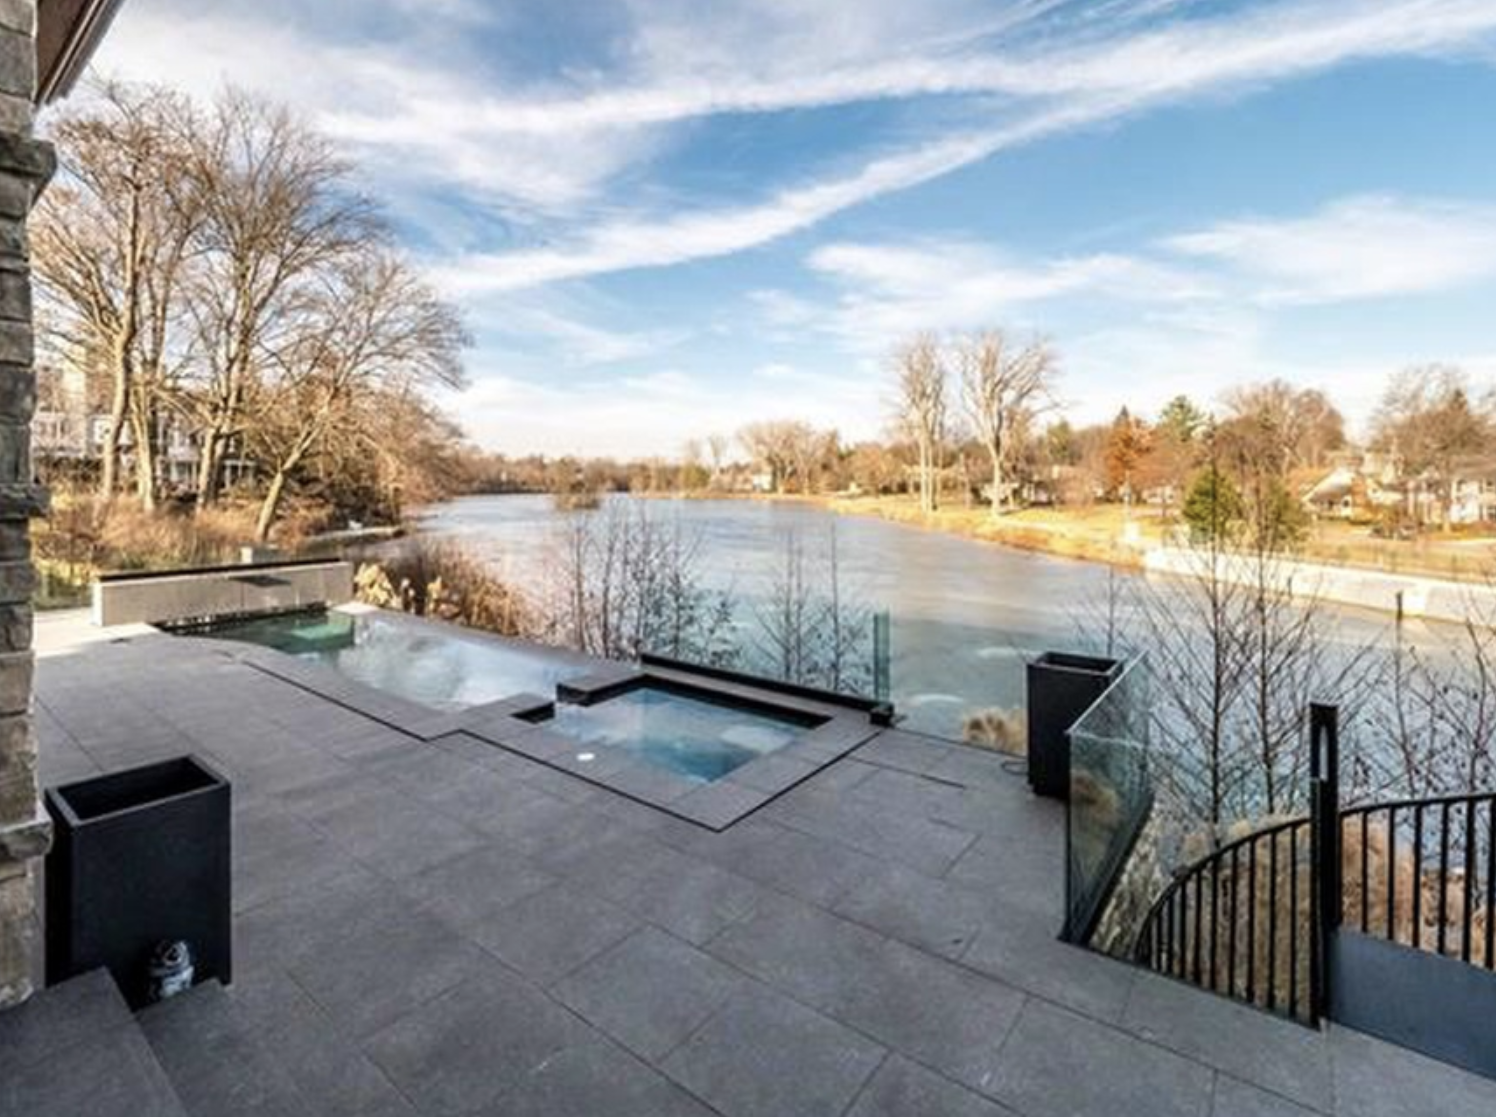 The home features an infinity edge pool, as well as overlooking a lake and a waterfall.